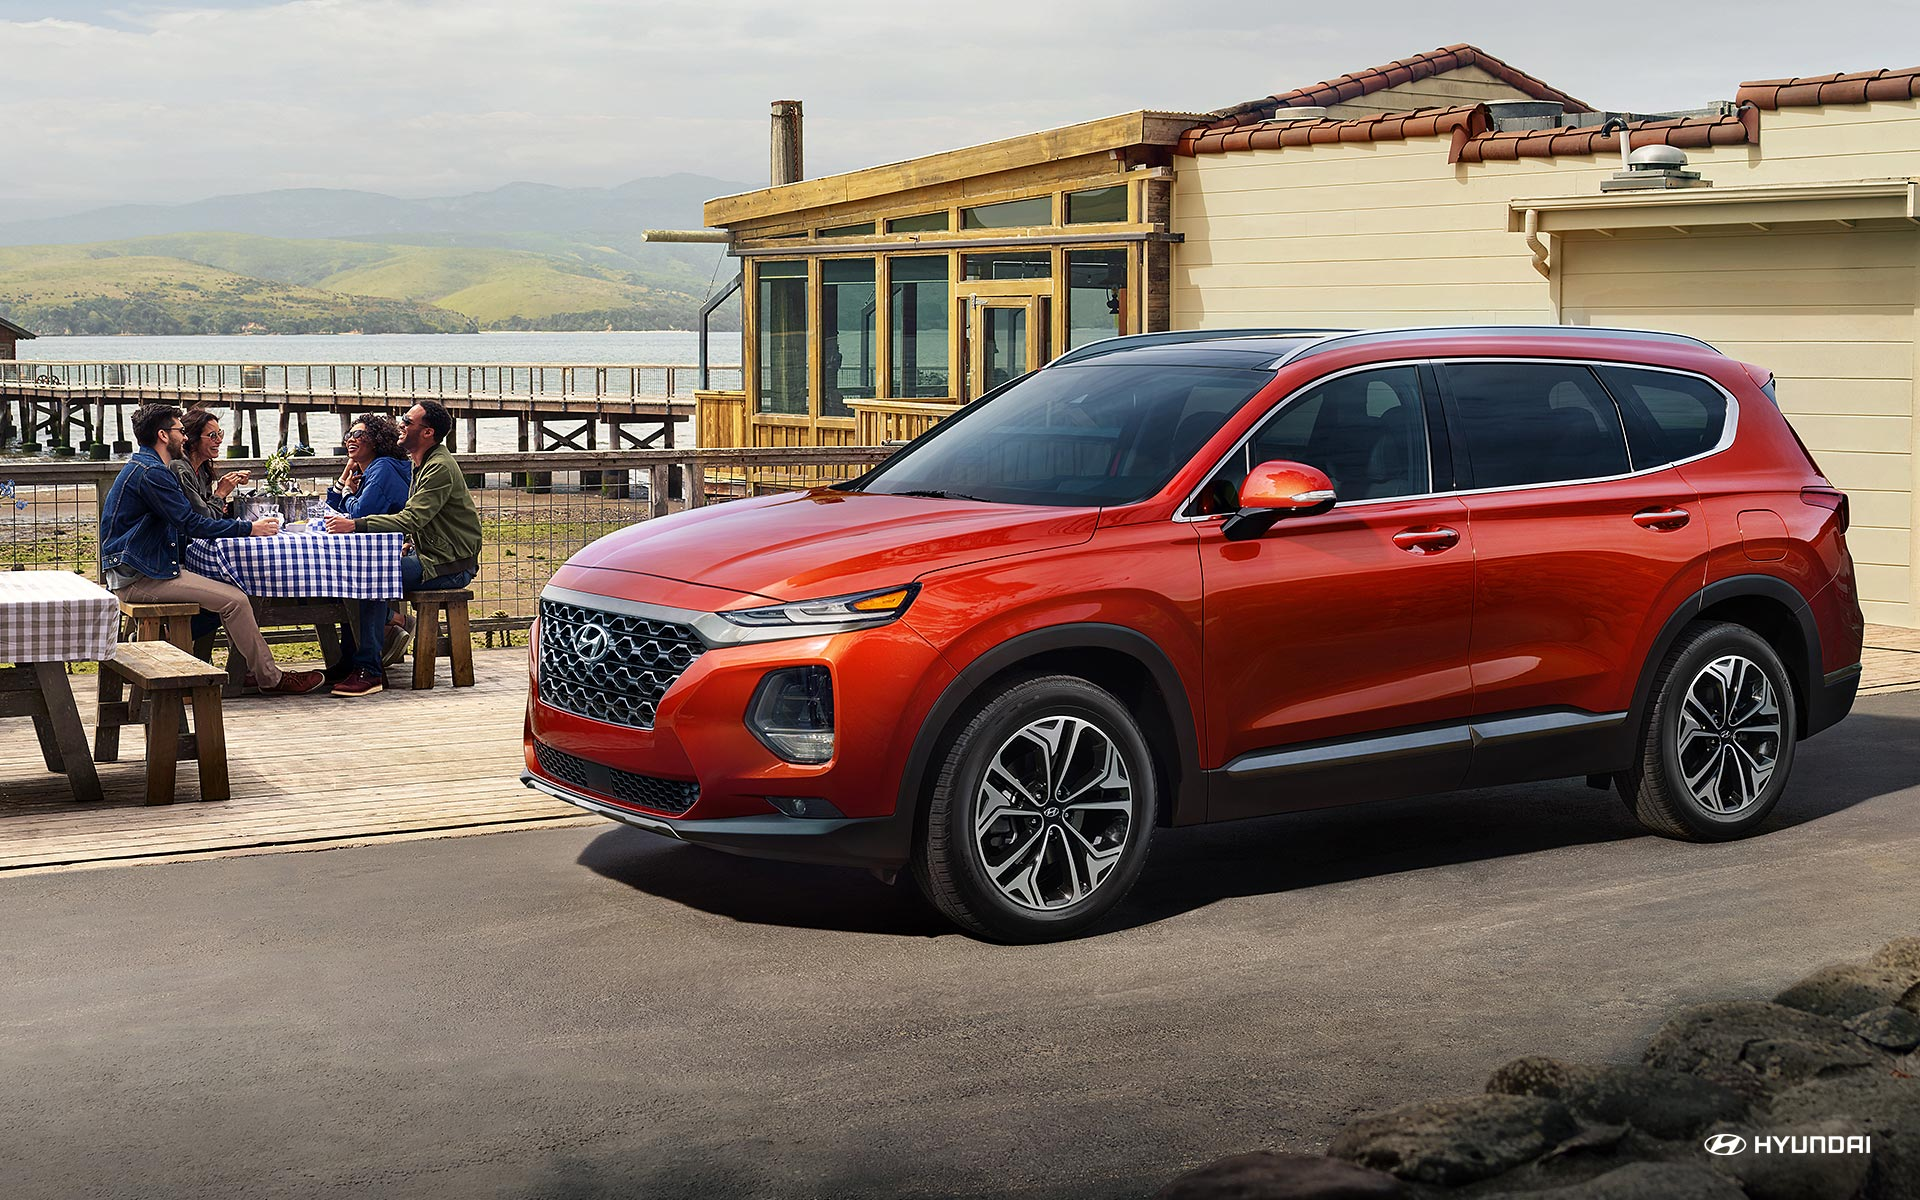 2020 Hyundai Santa Fe for sale in Orlando, FL